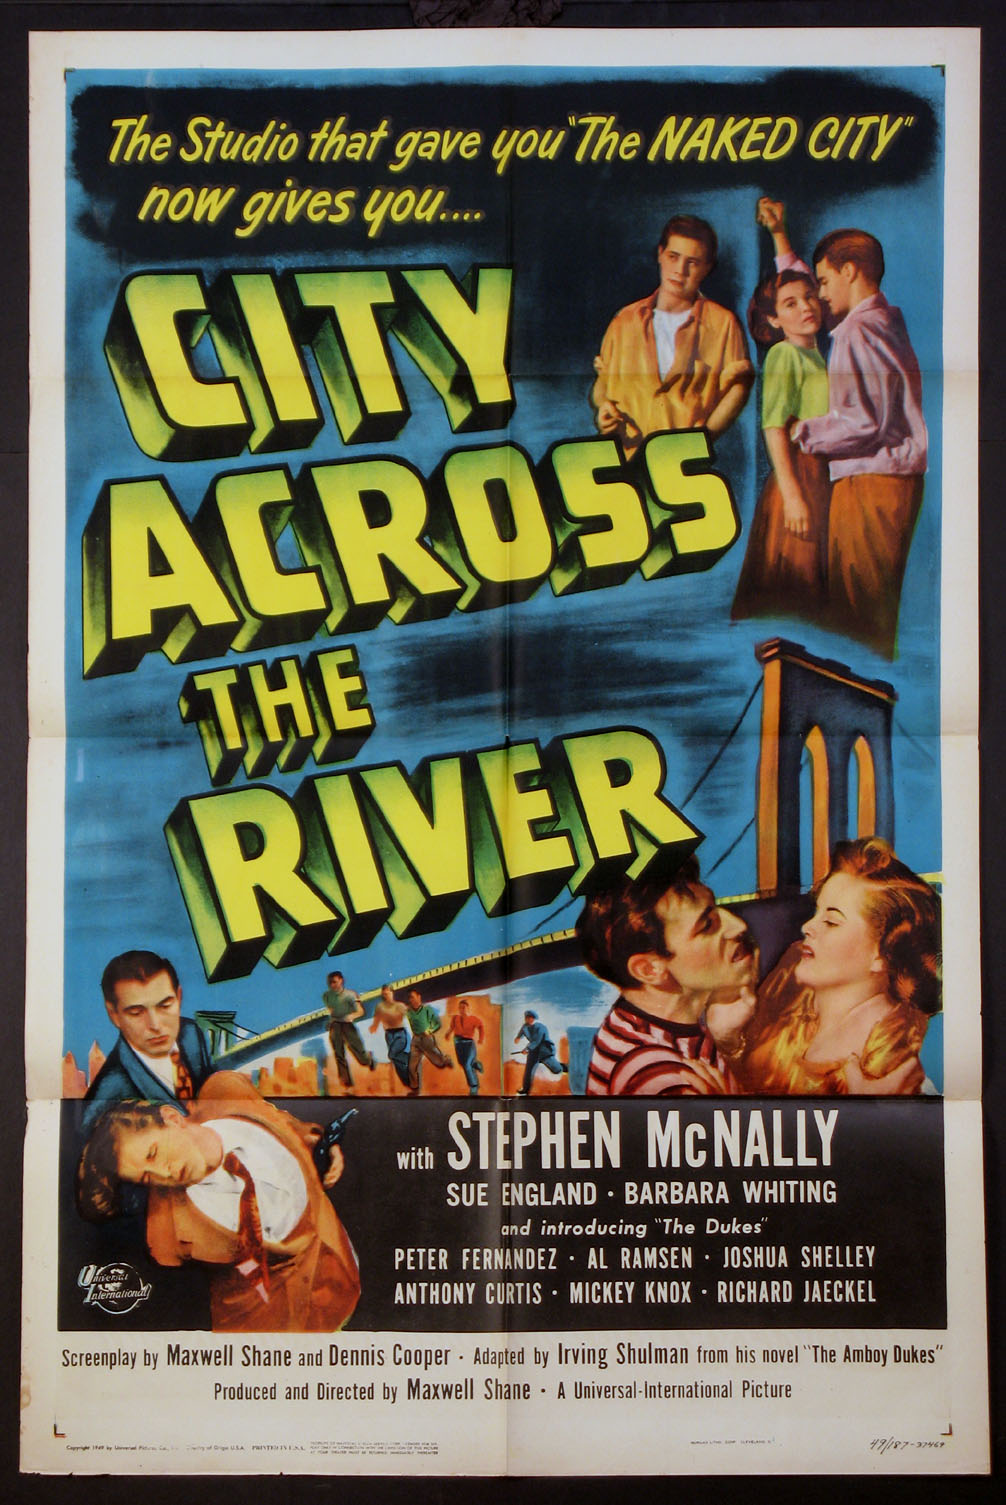 CITY ACROSS THE RIVER @ FilmPosters.com